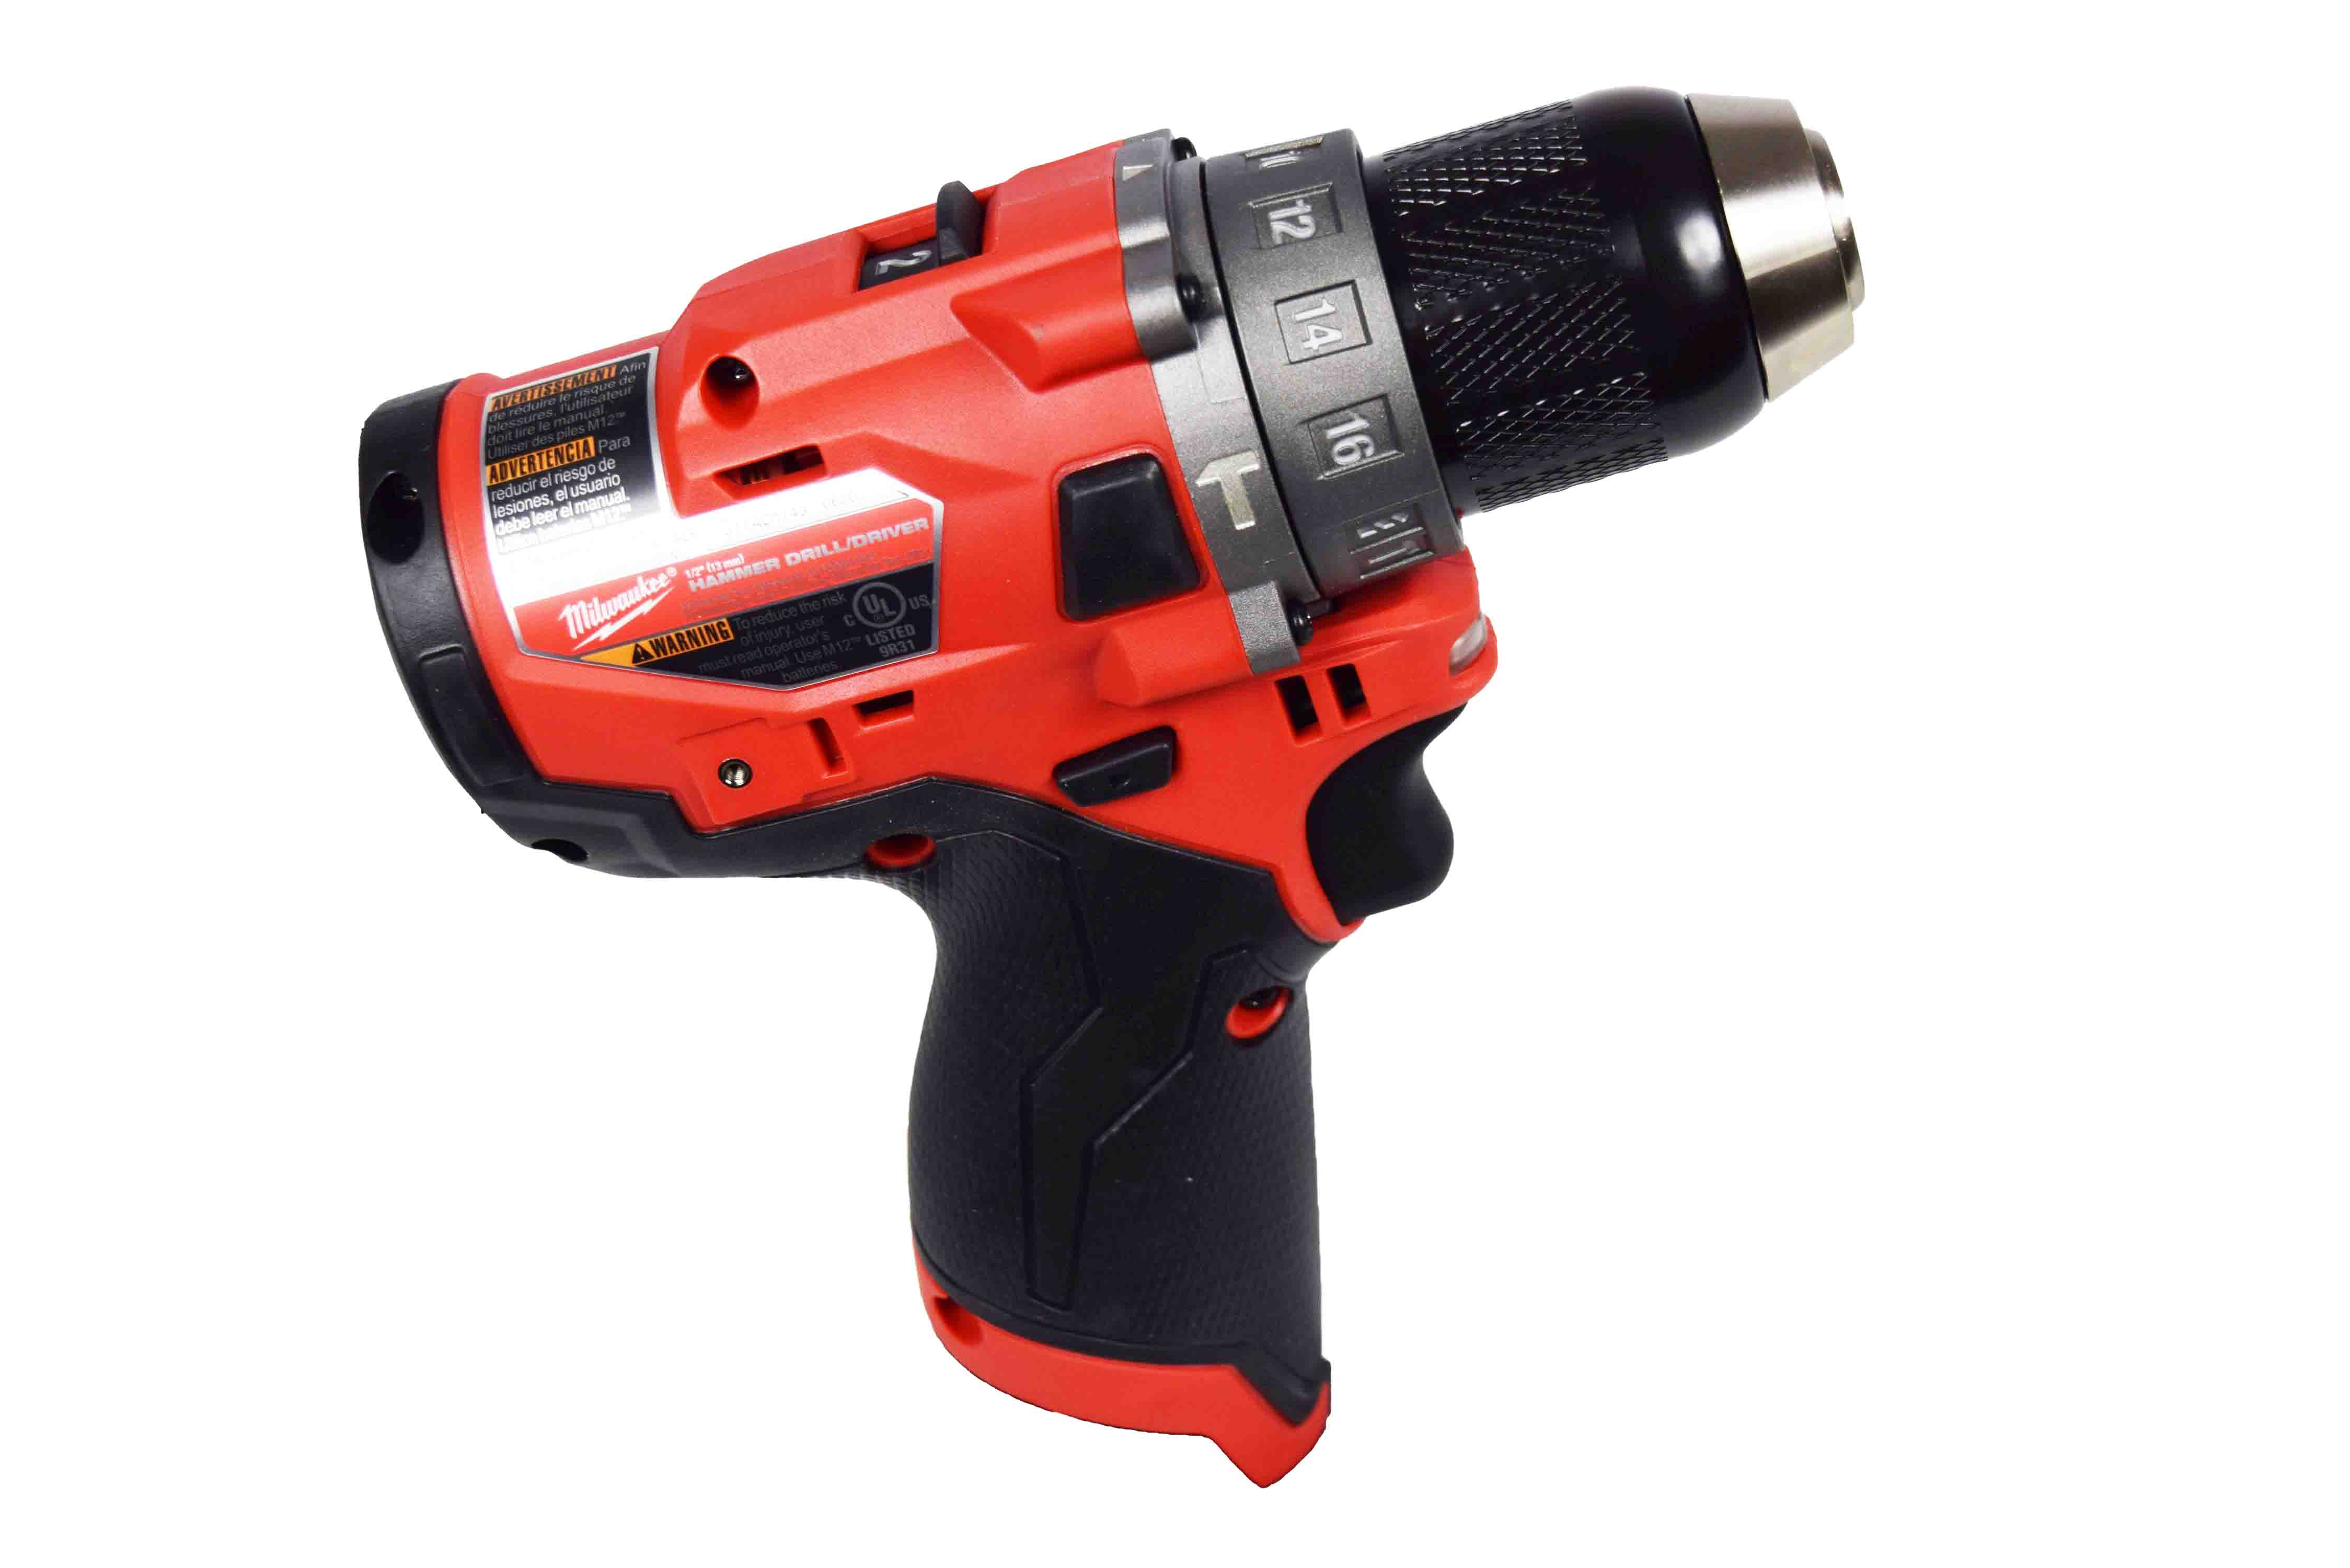 Milwaukee-2504-20-M12-Fuel-12-volt-Brushless-1-2-In.-Hammer-Drill-tool-only-image-4